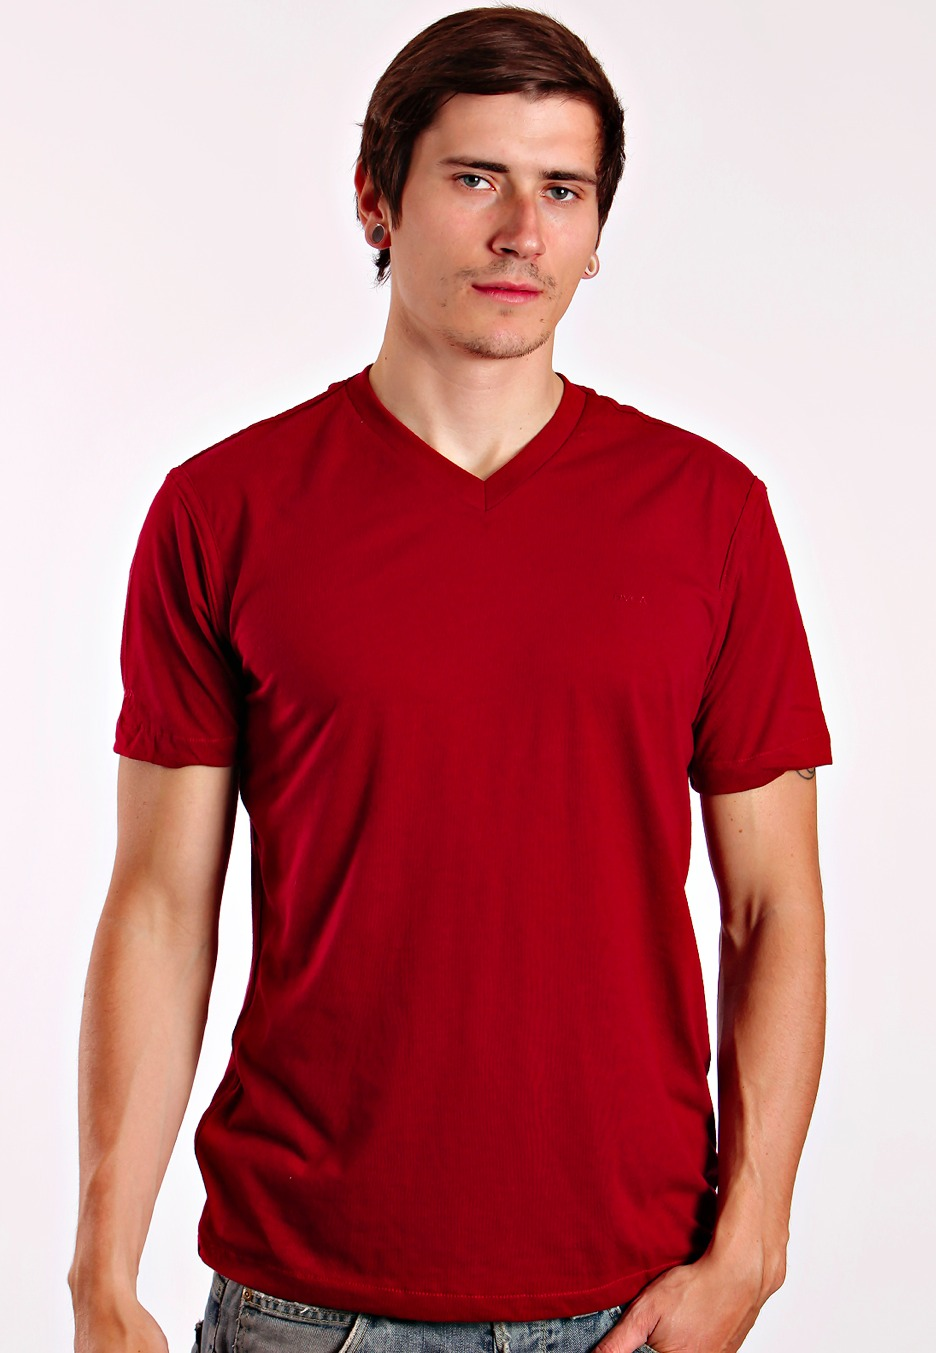 Enjoy free shipping and easy returns every day at Kohl's. Find great deals on Mens V-Neck T-Shirts Tops at Kohl's today!